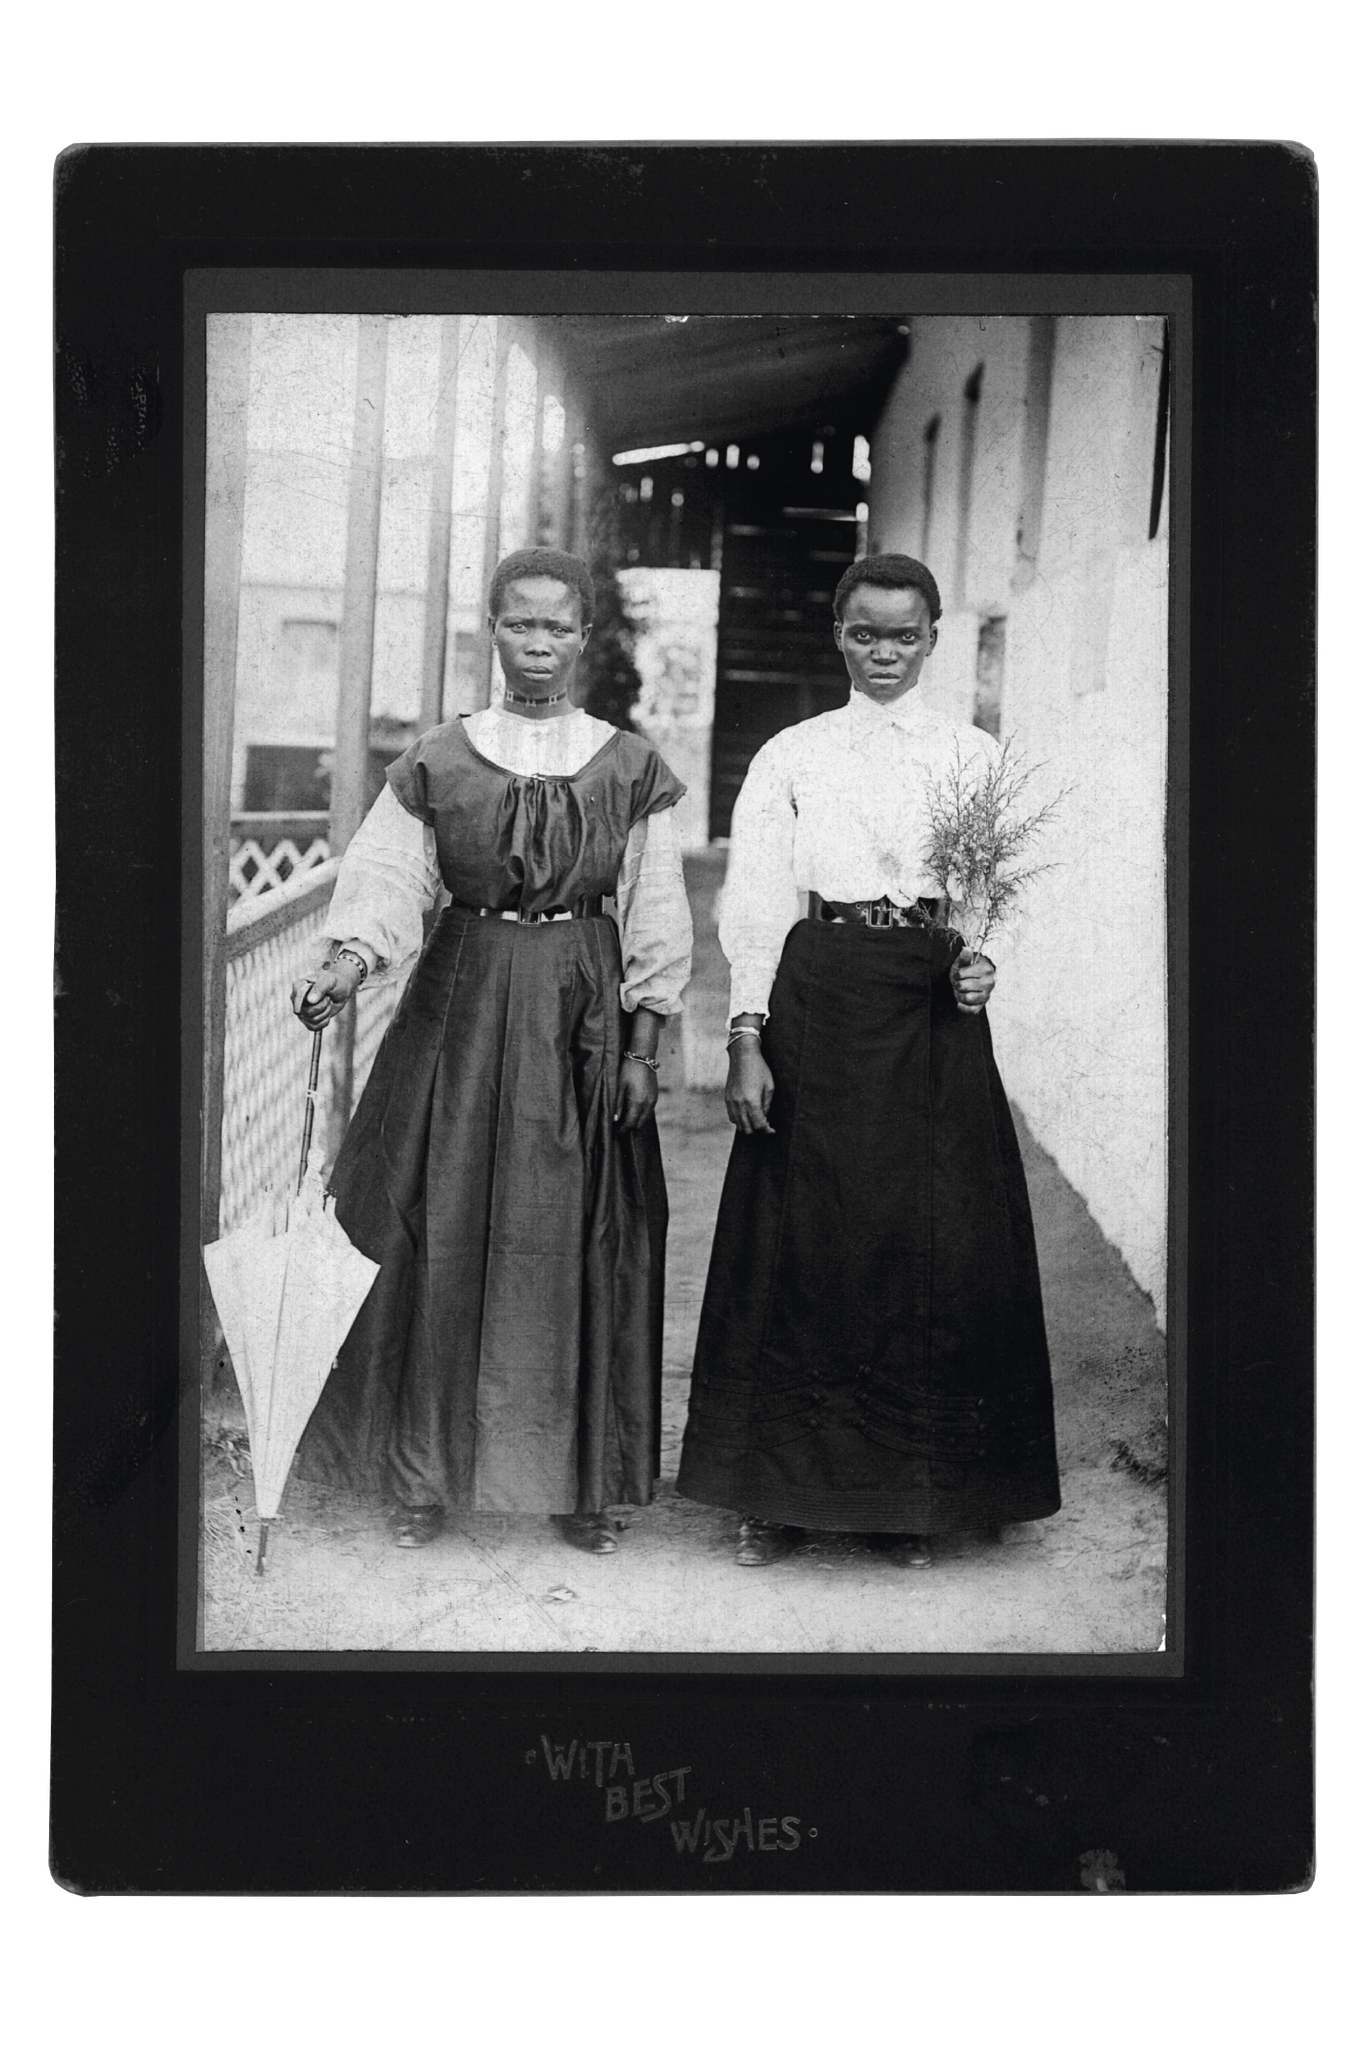 Archival photograph of 2 south african women